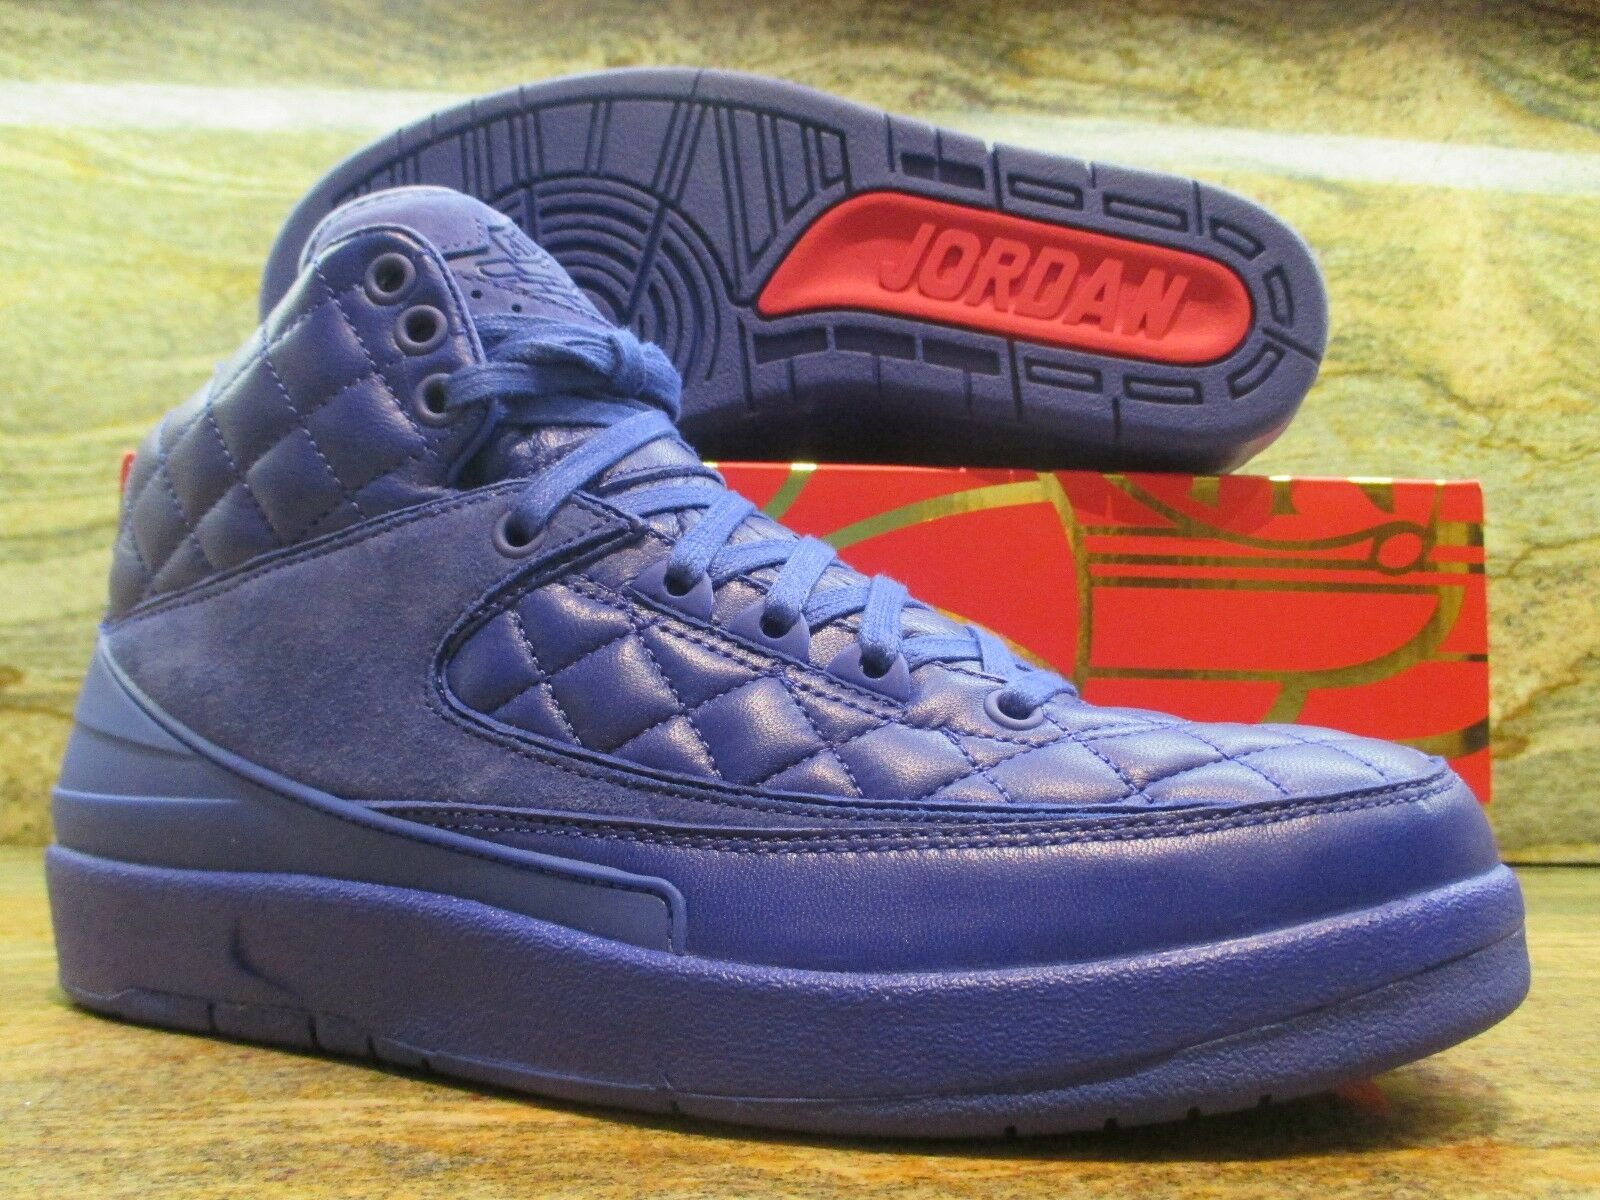 2015 Nike Air Jordan 2 II Retro Just Don Don Don C SZ 11 Quilted blu LUX QS 717170-405 f7ba58